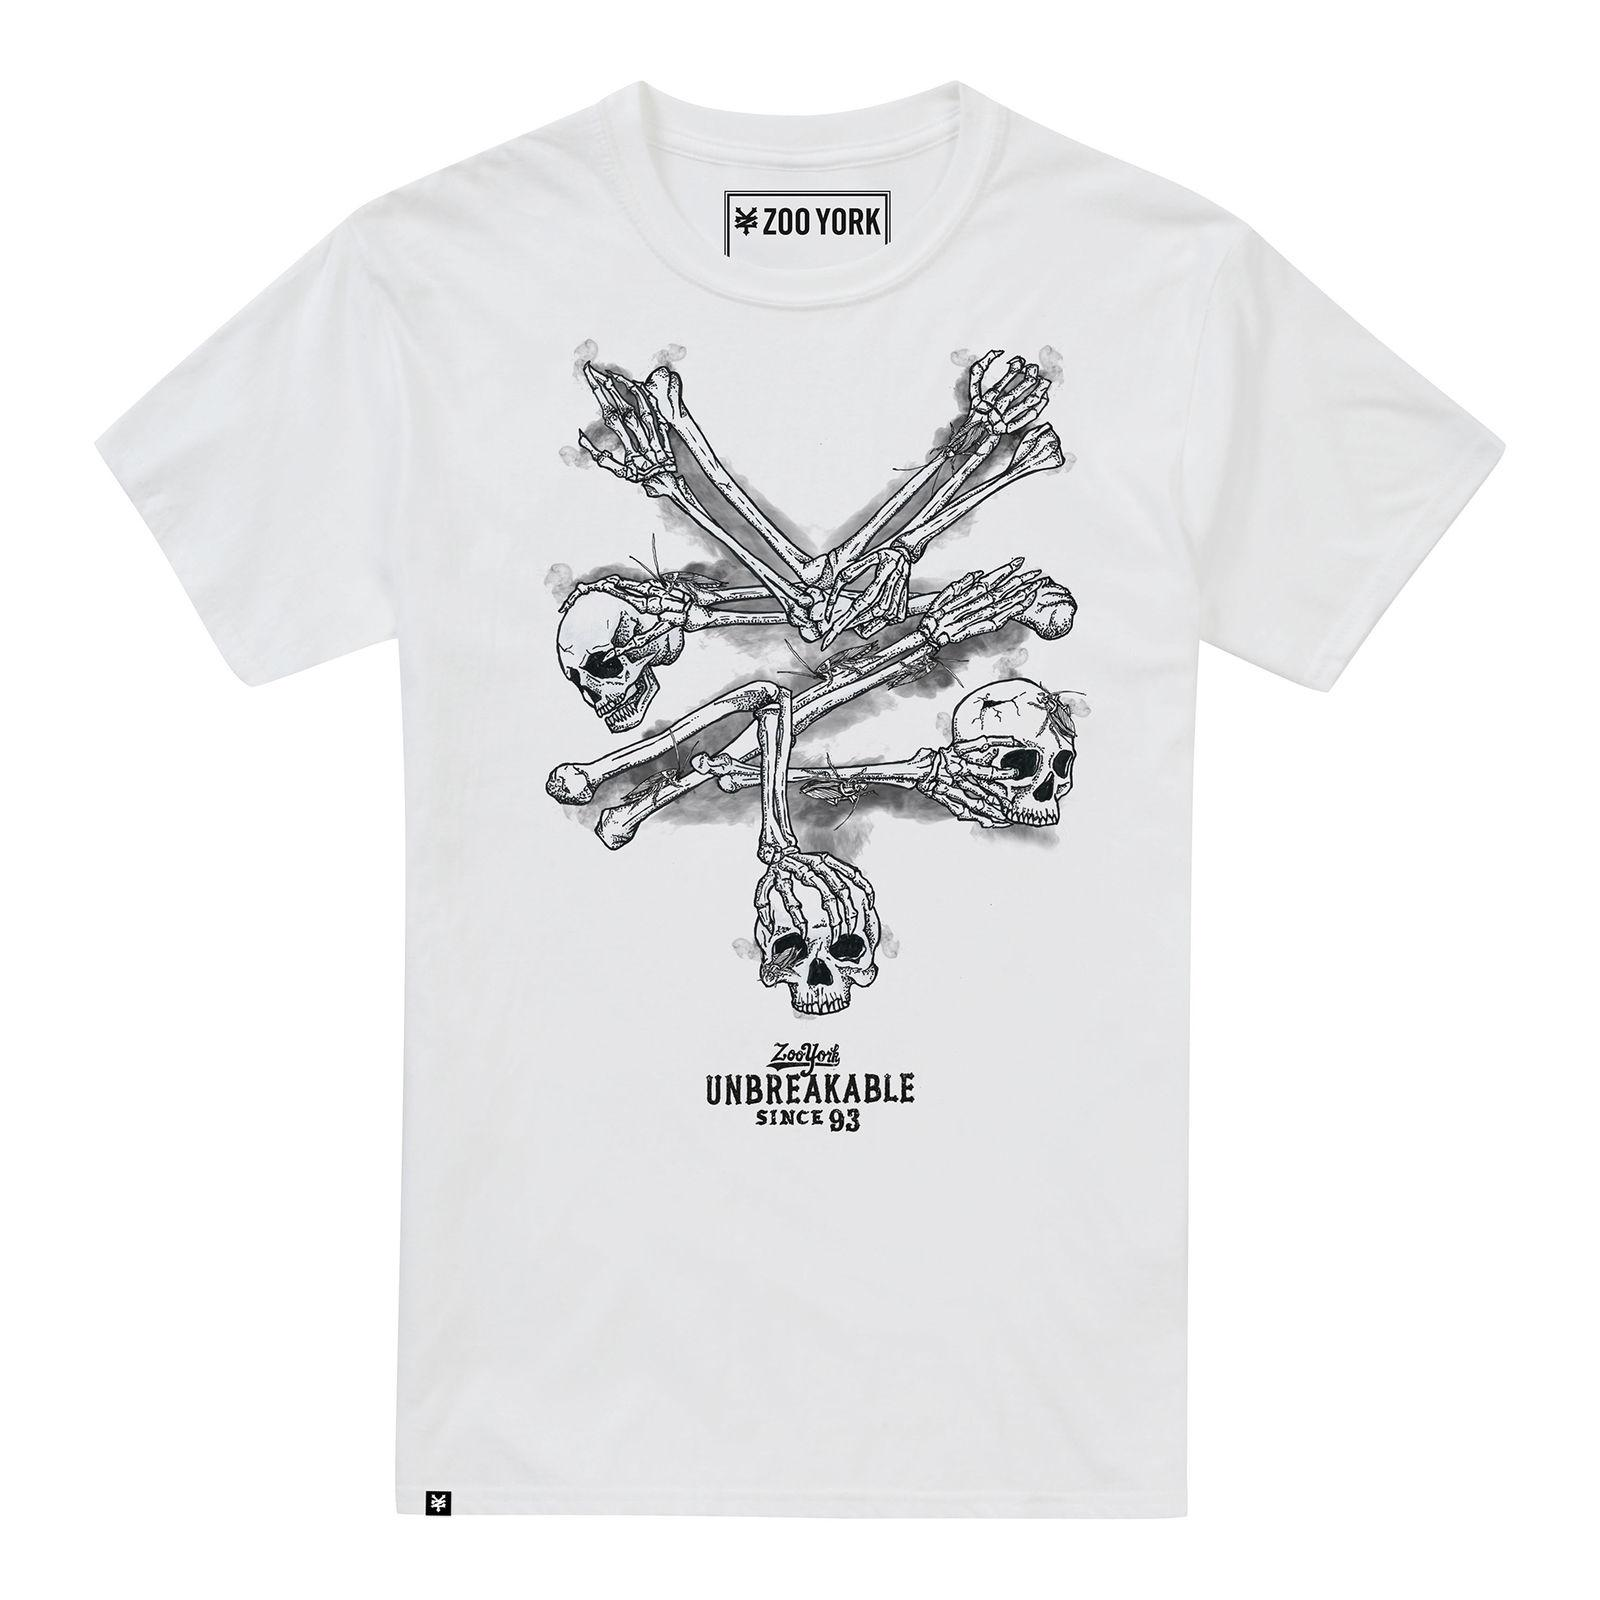 ZOO YORK BONES MENS T WHITE Interesting T Shirt Designs T Shirts Cool  Designs From Cooltees fac12271fb6